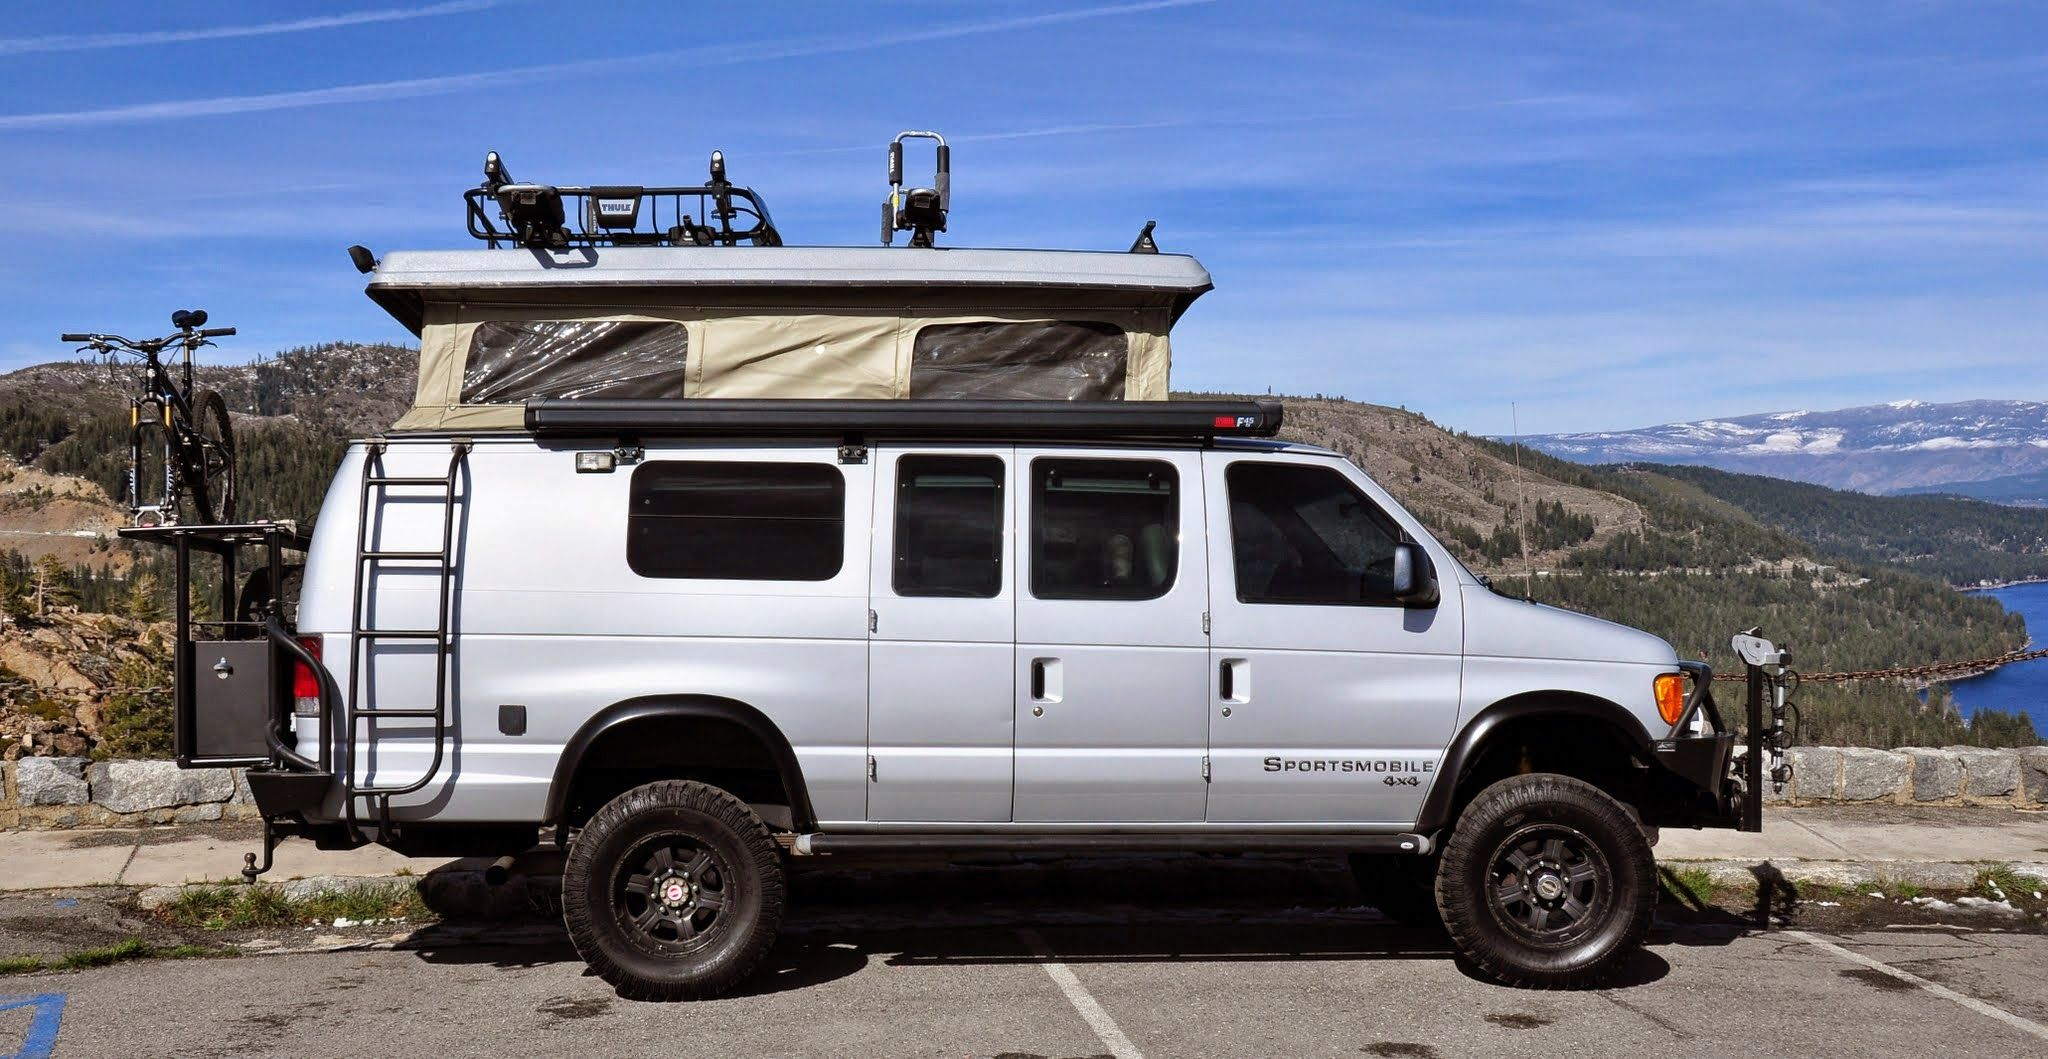 sportsmobile offers 50 camper van plans or will customize to meet your camping travel